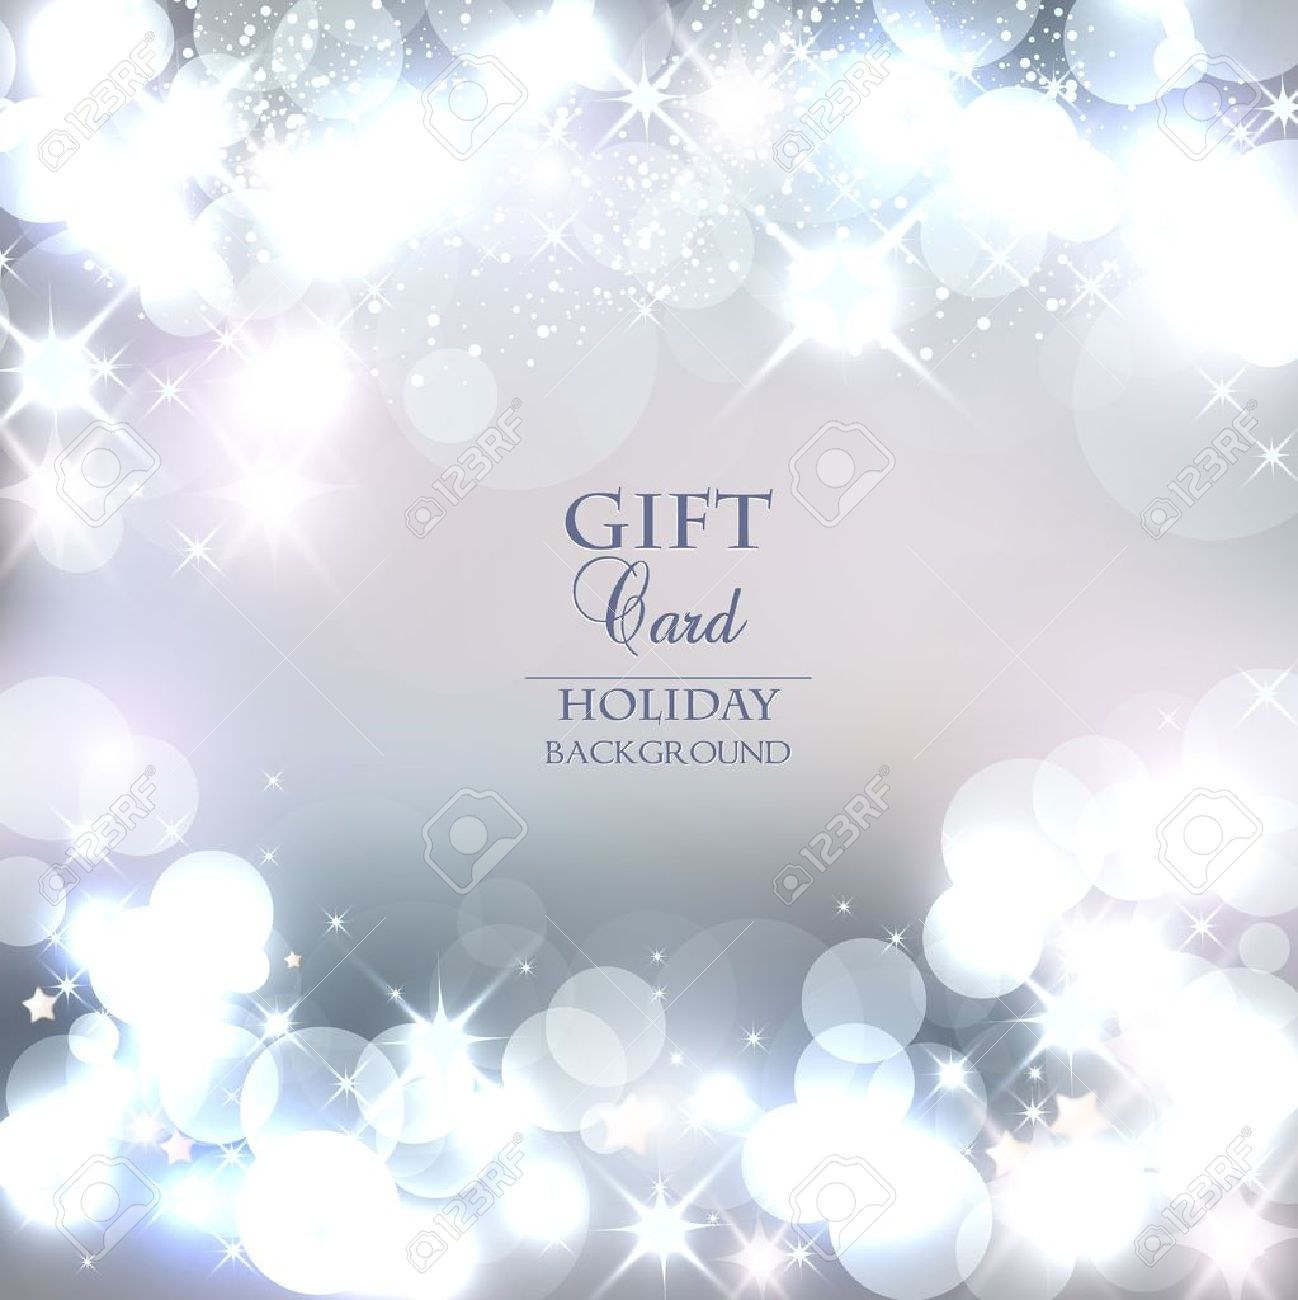 Elegant Christmas background with snowflakes and place for text. Vector Illustration. - 22070540